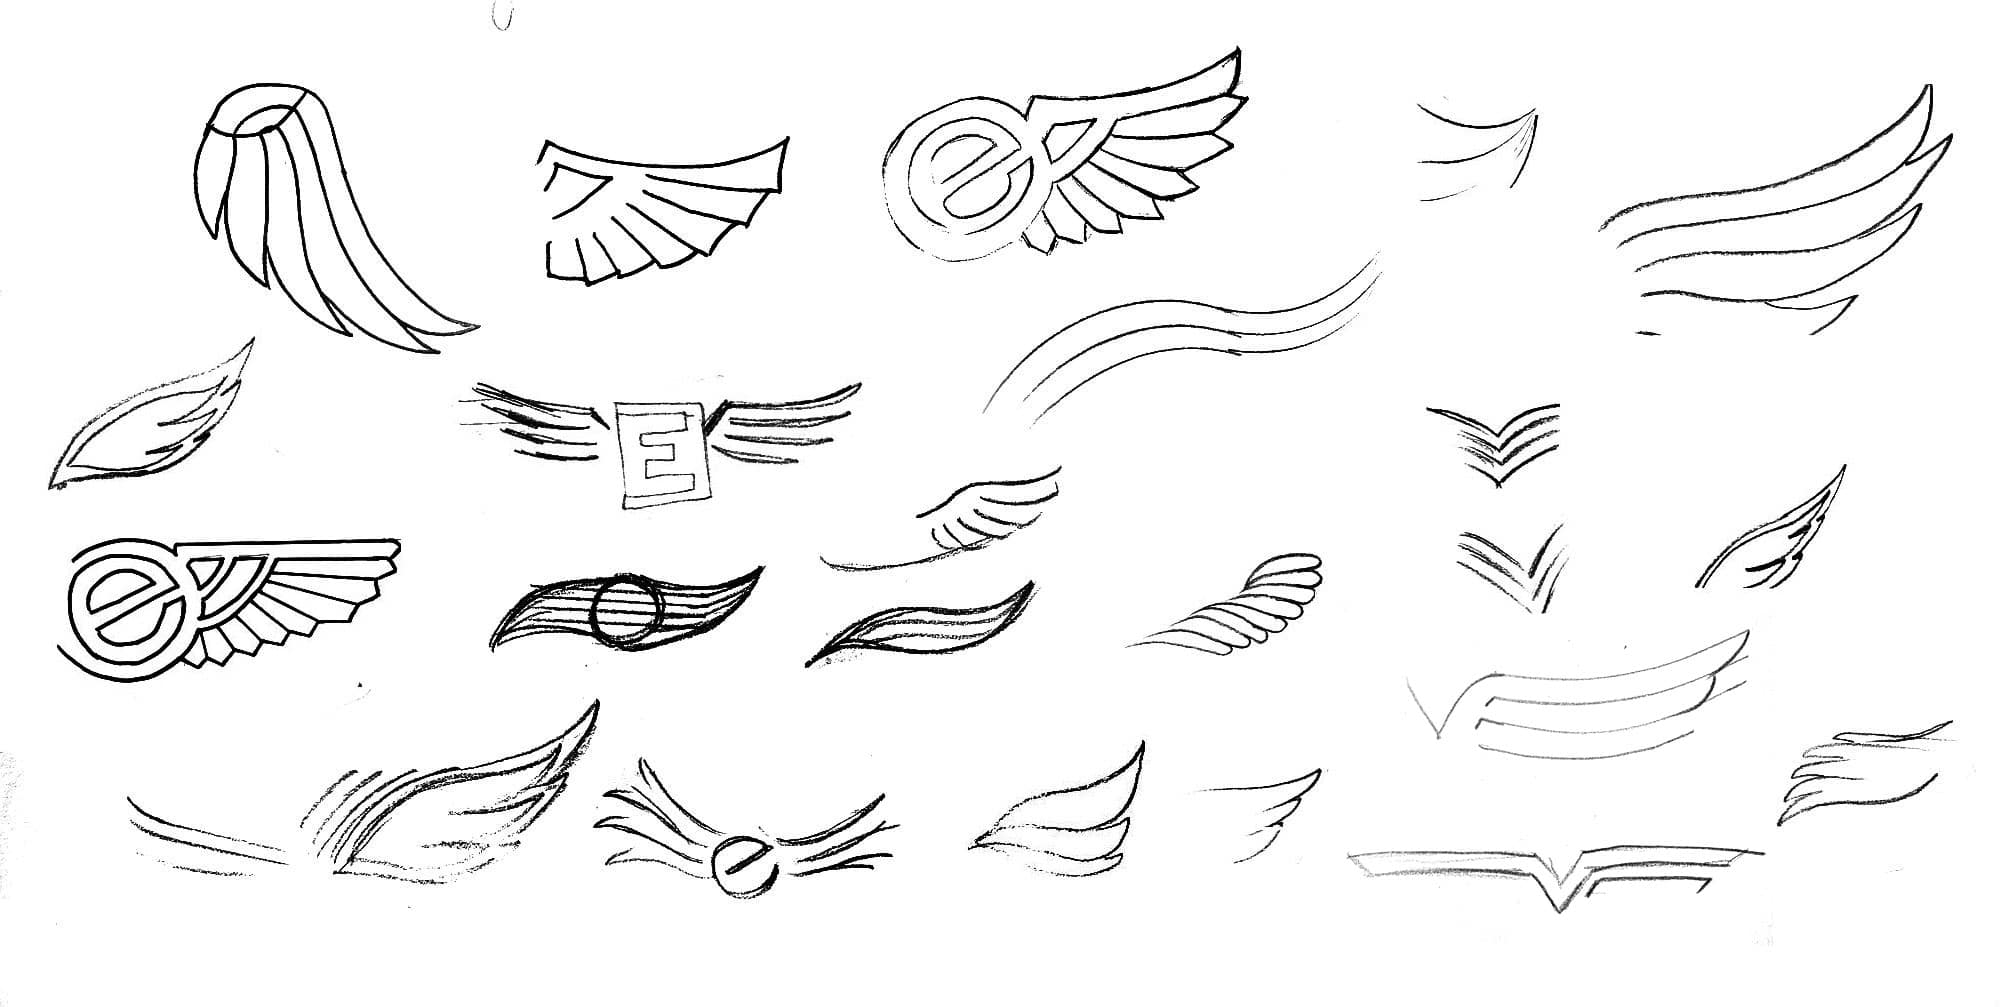 logo redesign process by hand